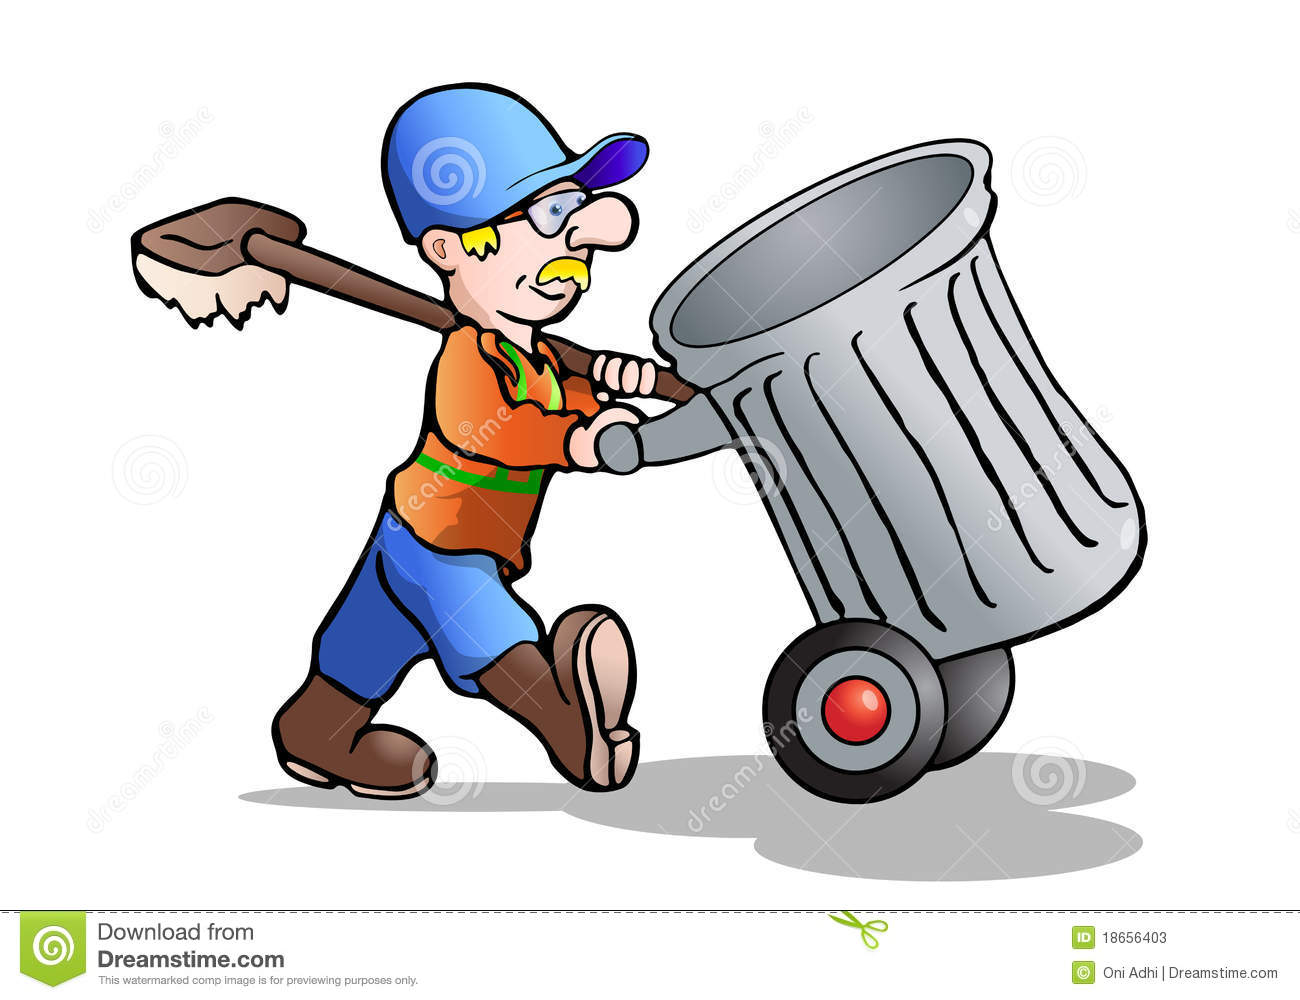 janitor stock illustrations 1 712 janitor stock illustrations rh dreamstime com janitorial clipart clipart Janitorial Services